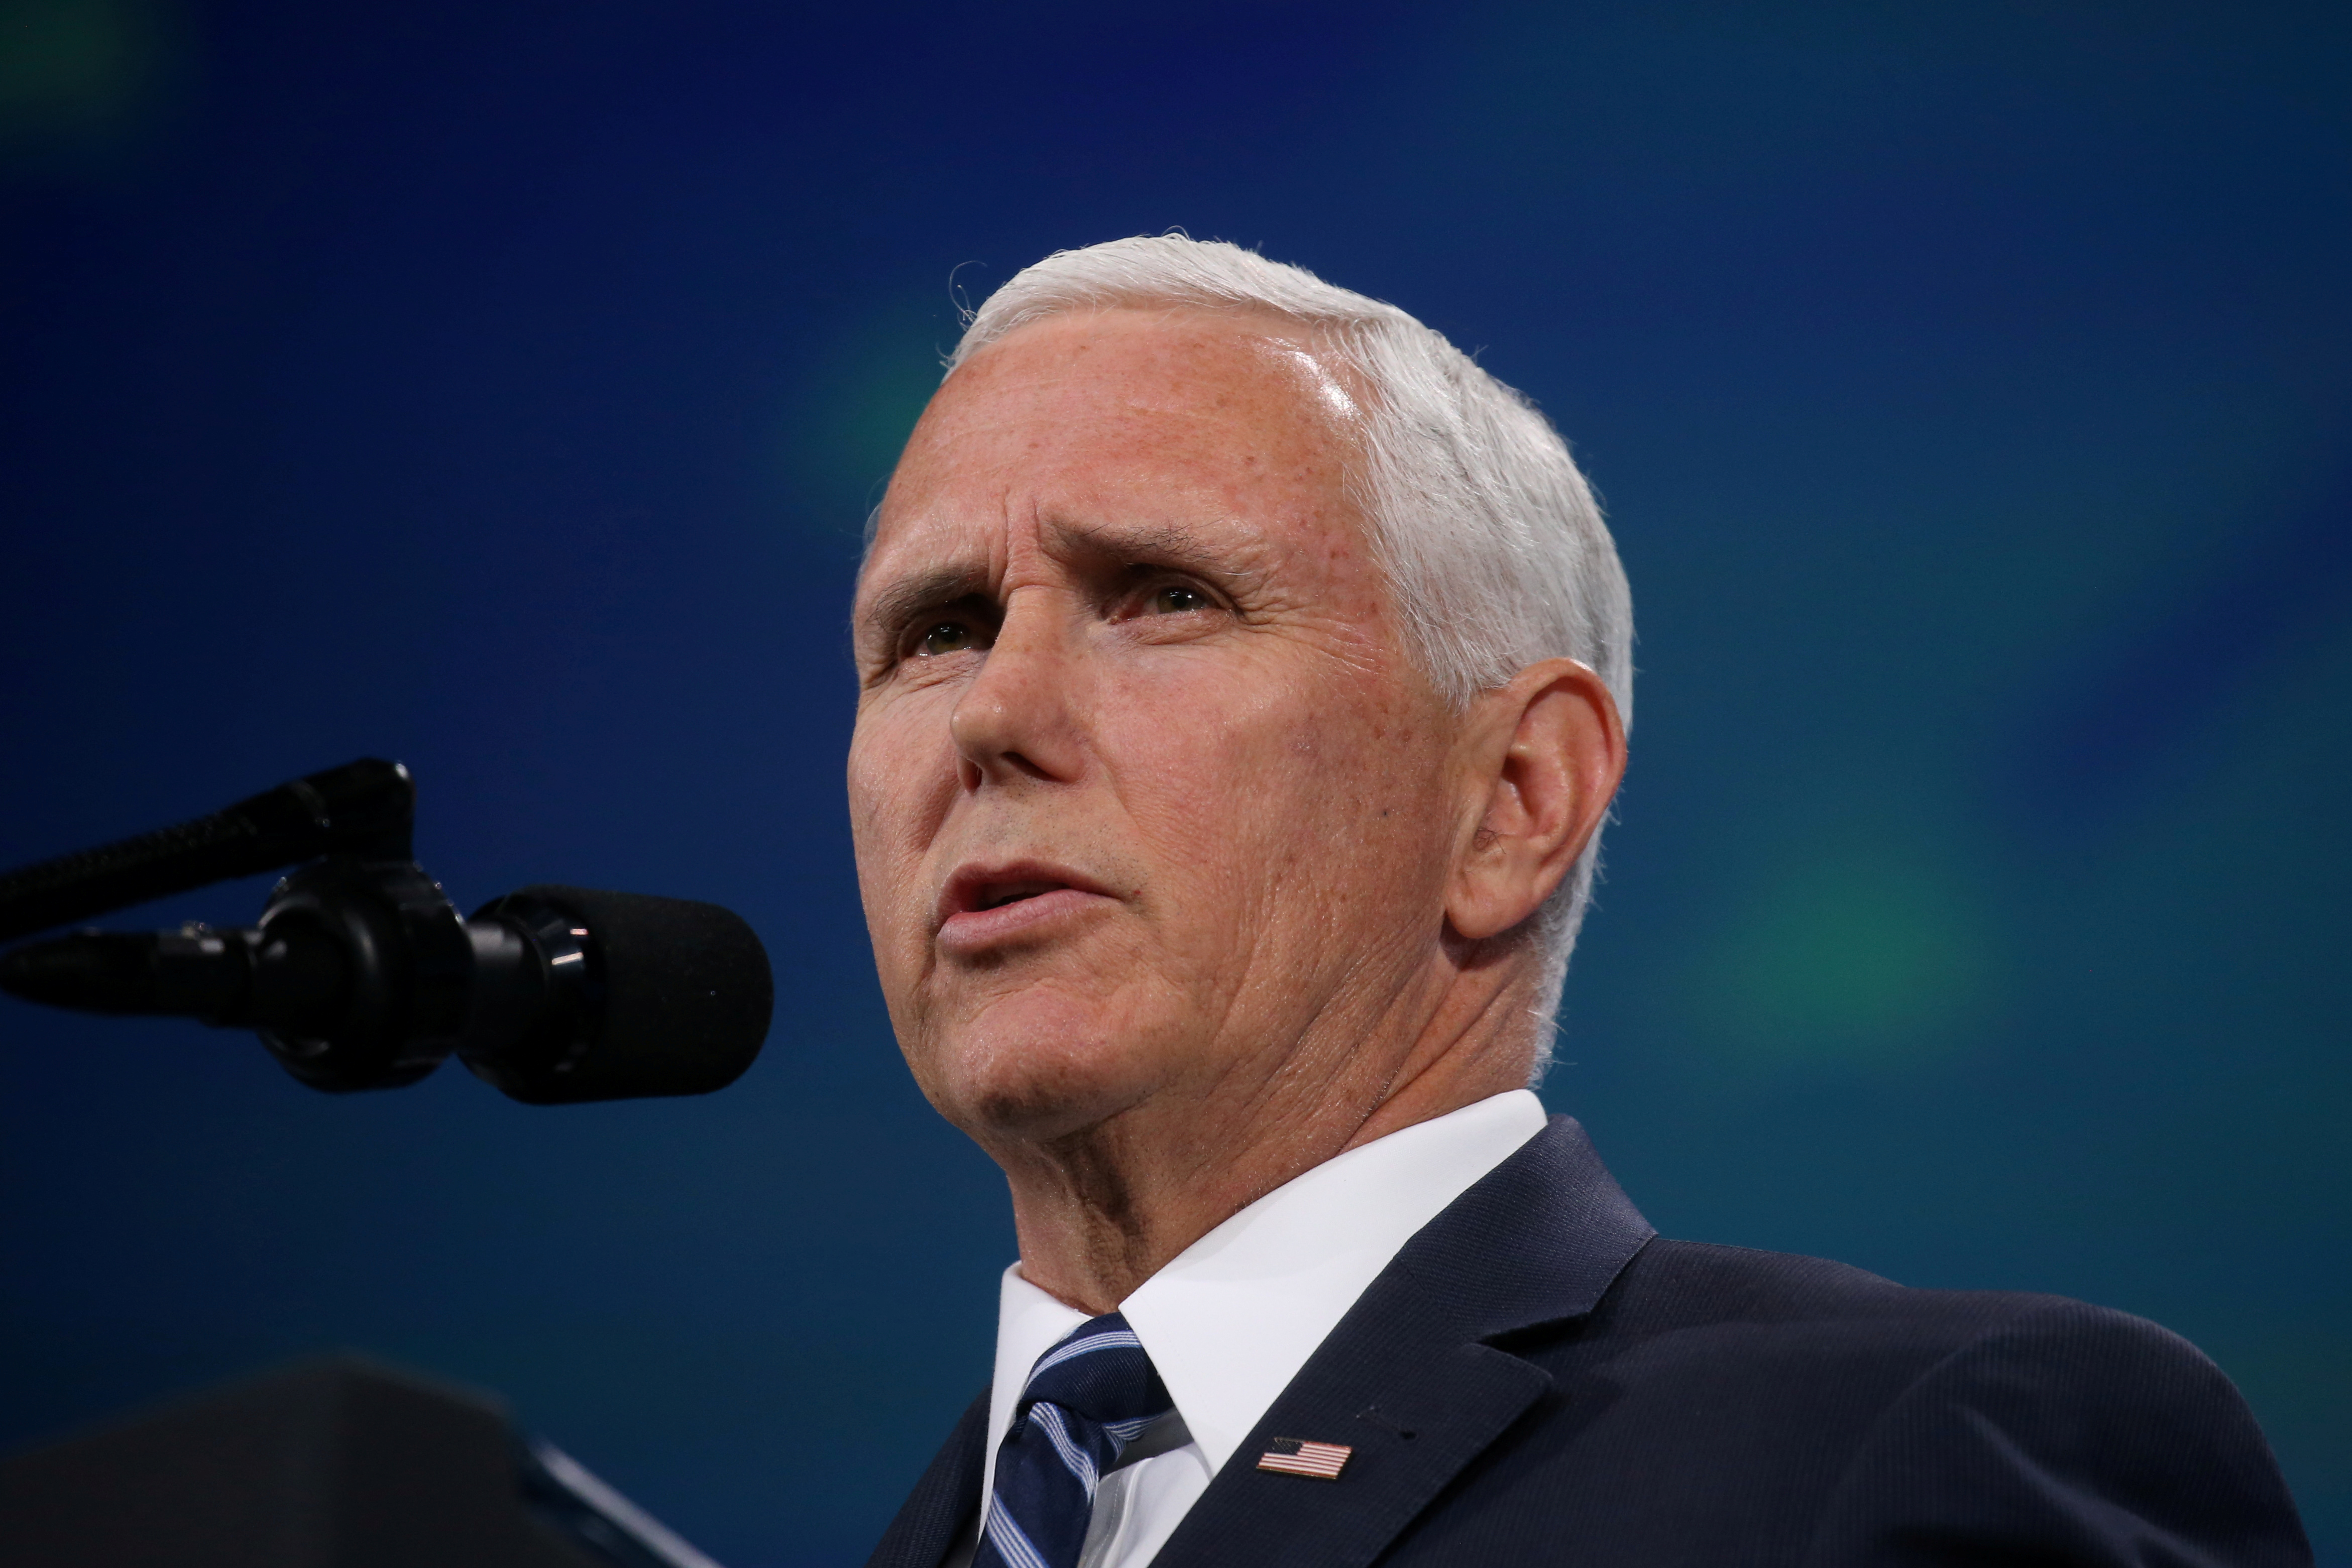 FILE PHOTO: U.S. Vice President Mike Pence President delivers remarks to the National Rifle Association-Institute for Legislative Action's (NRA-ILA) 148th annual meeting in Indianapolis, Indiana, U.S., April 26, 2019. REUTERS/Leah Millis/File Photo